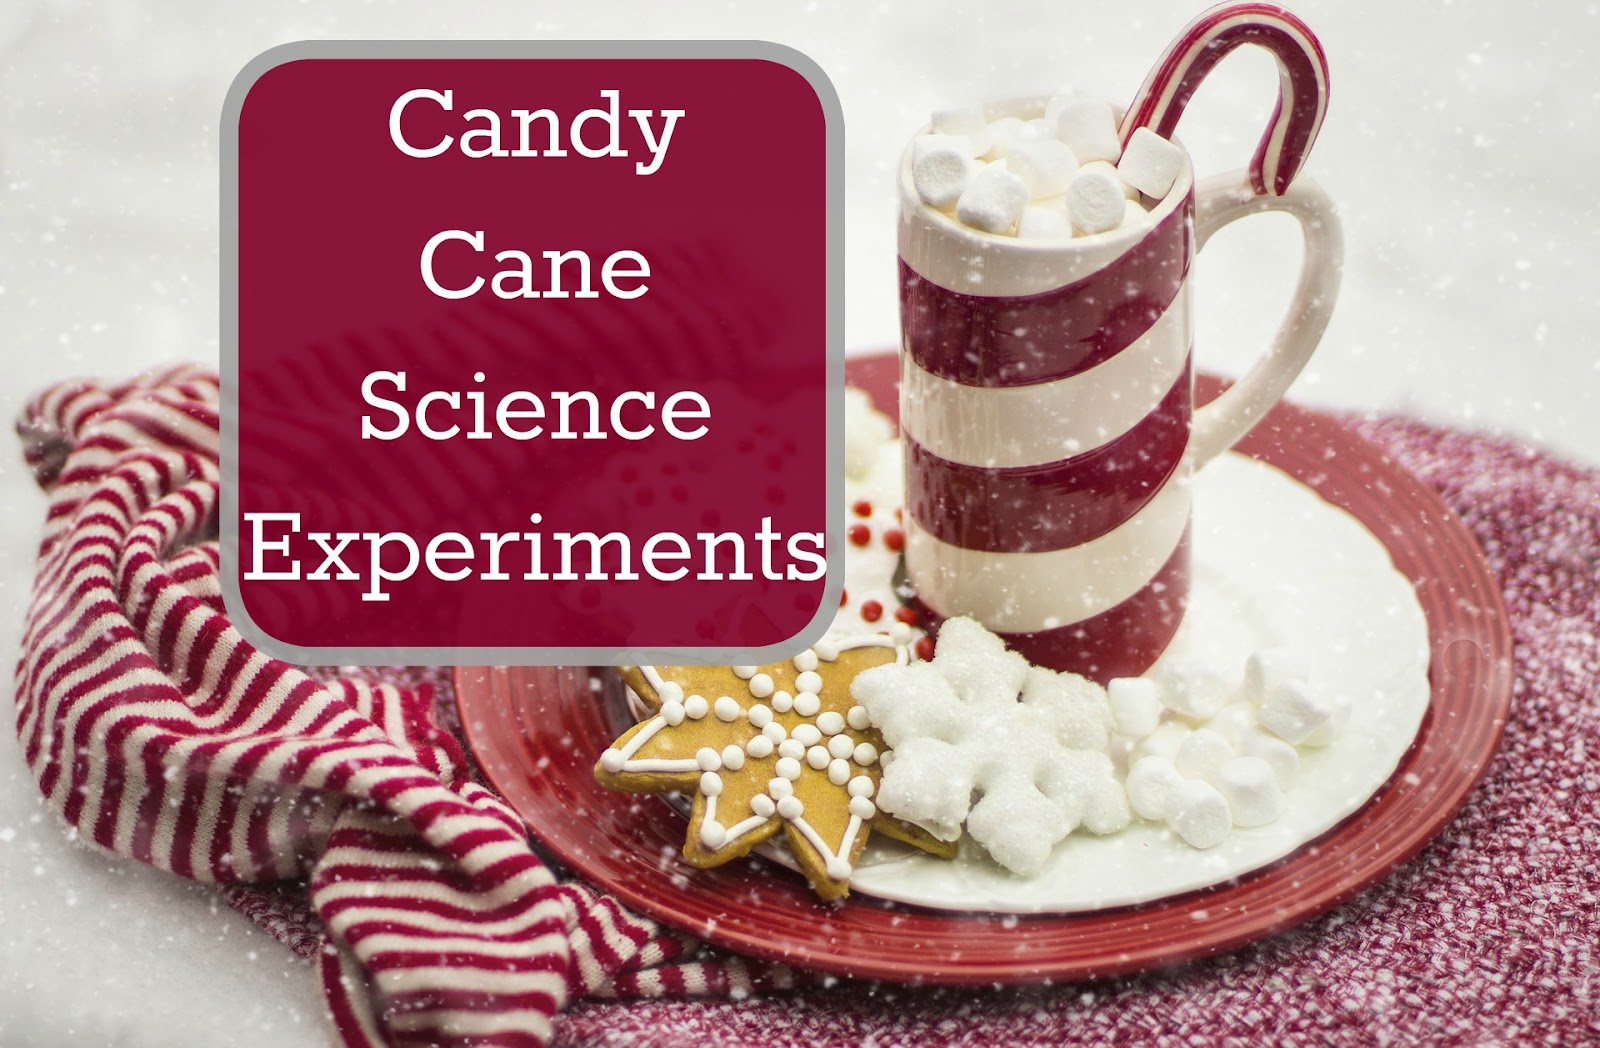 Our Unschooling Journey Through Life Candy Cane Science